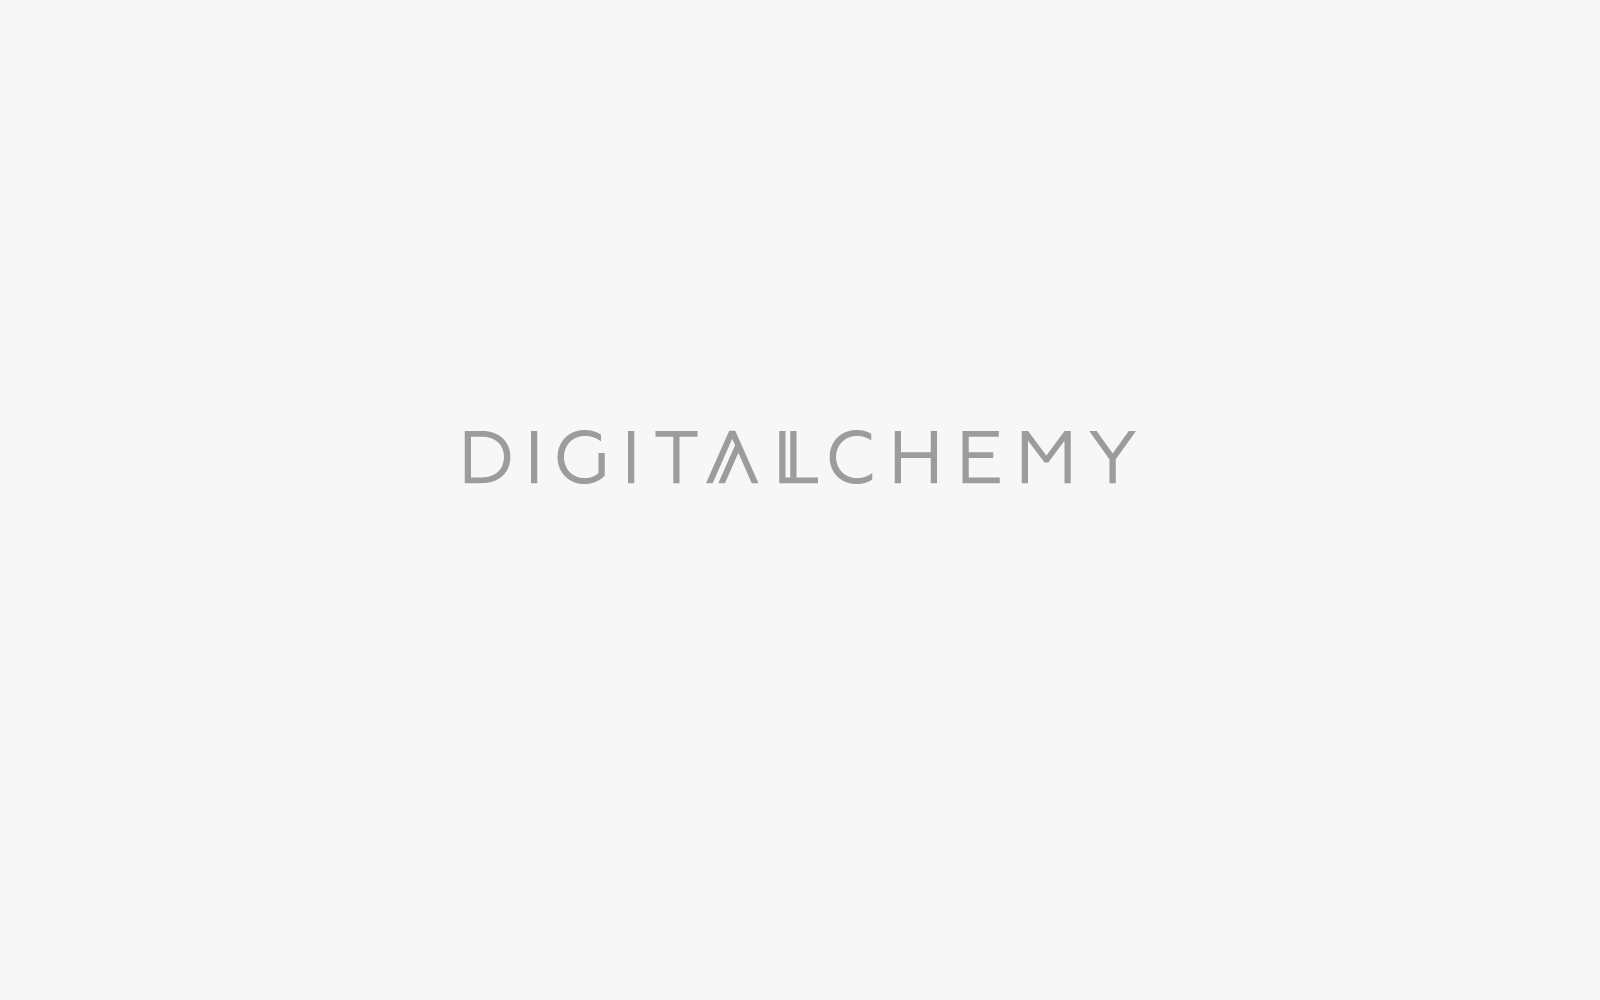 Digital Alchemy Portfolio Logotype